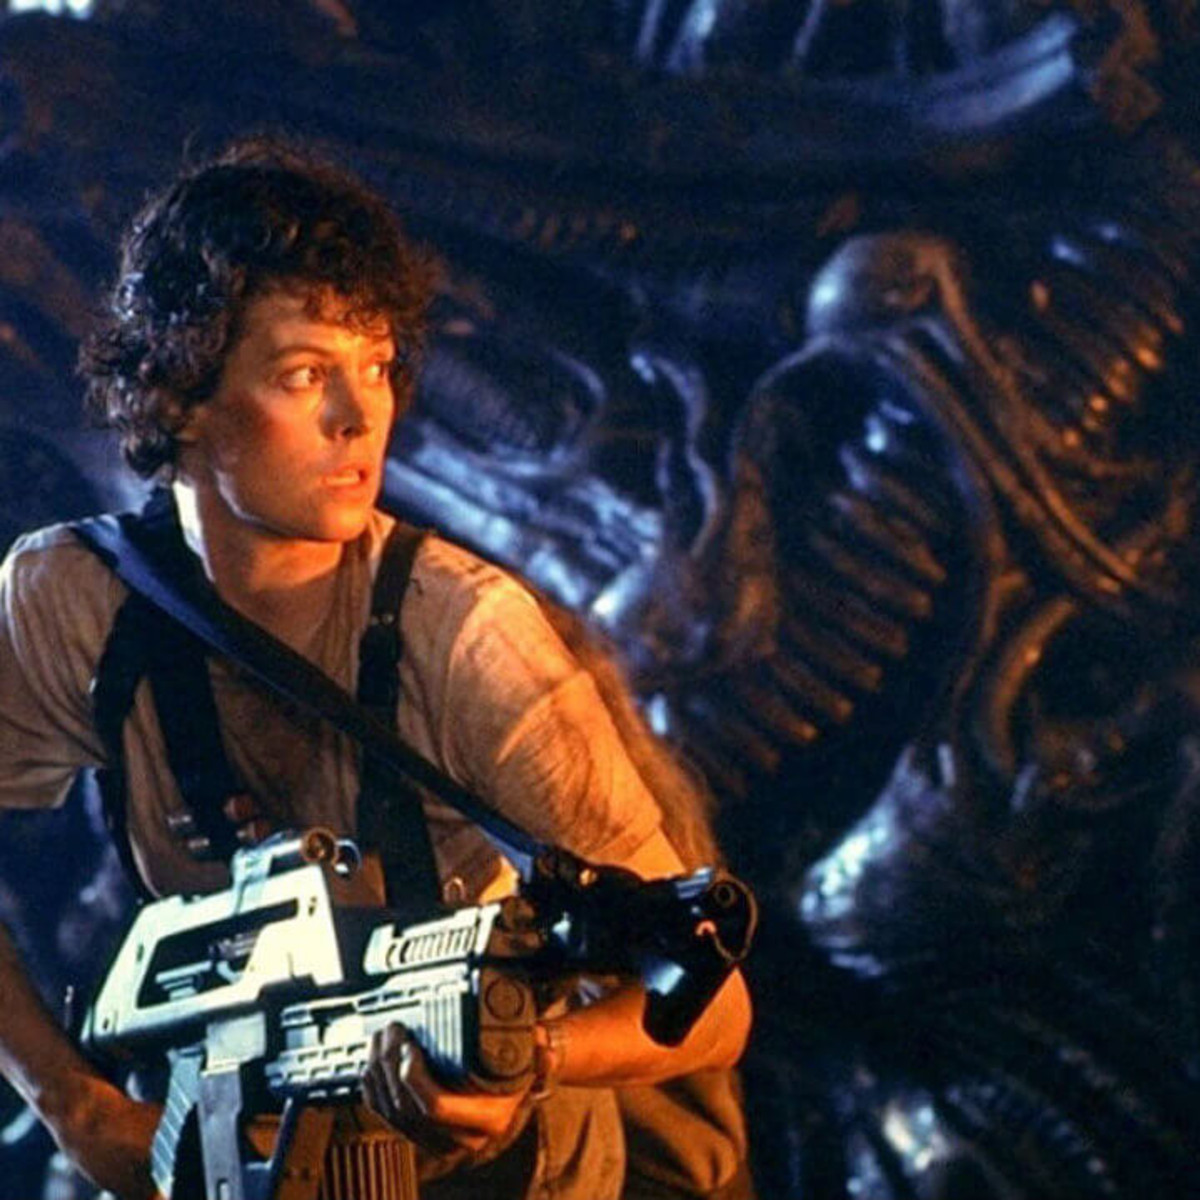 Sigourney Weaver as Ellen Ripley in Aliens